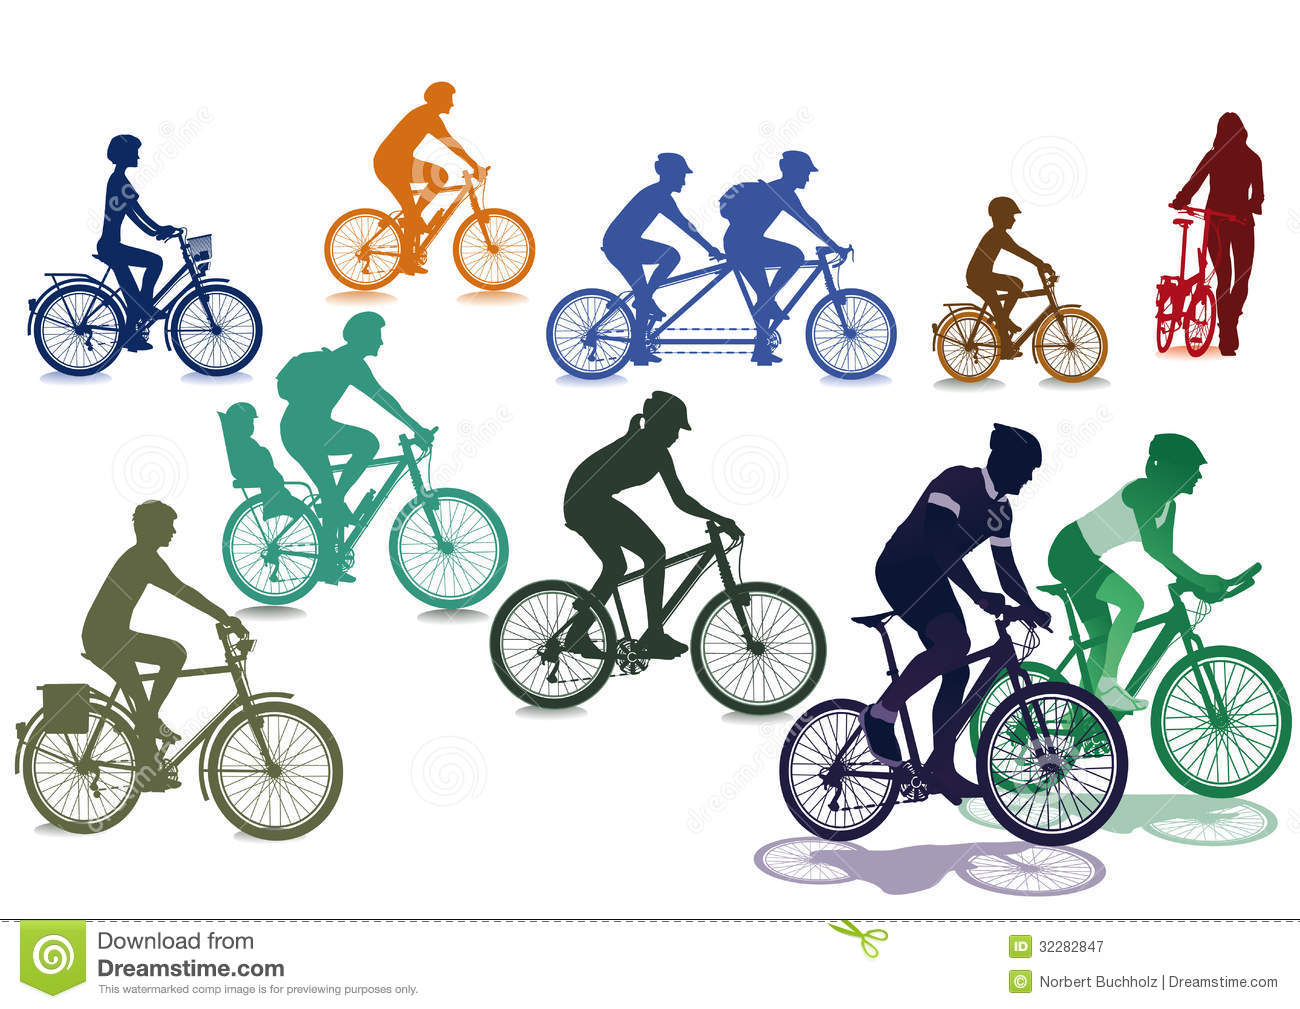 Cyclists riding bicycles stock vector. Image of cycling ...